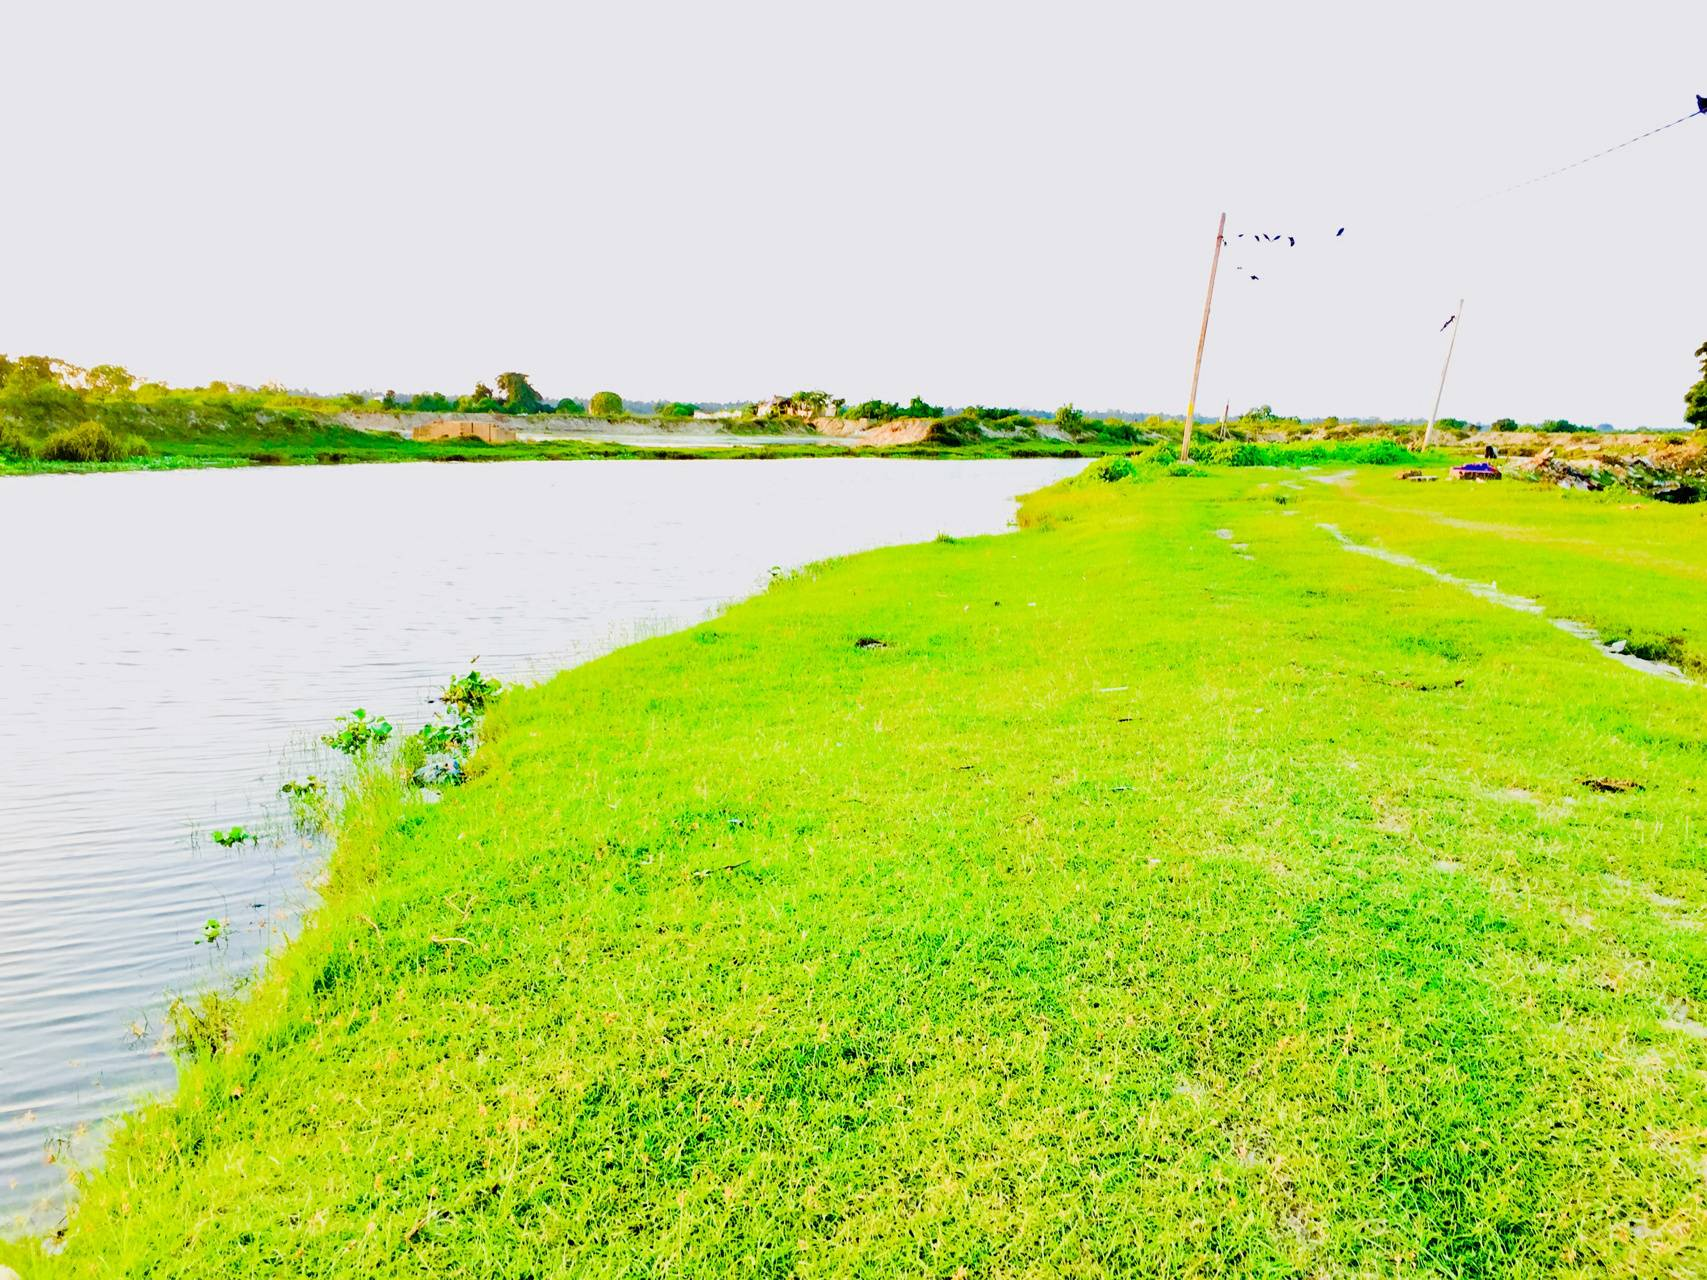 Grass with river